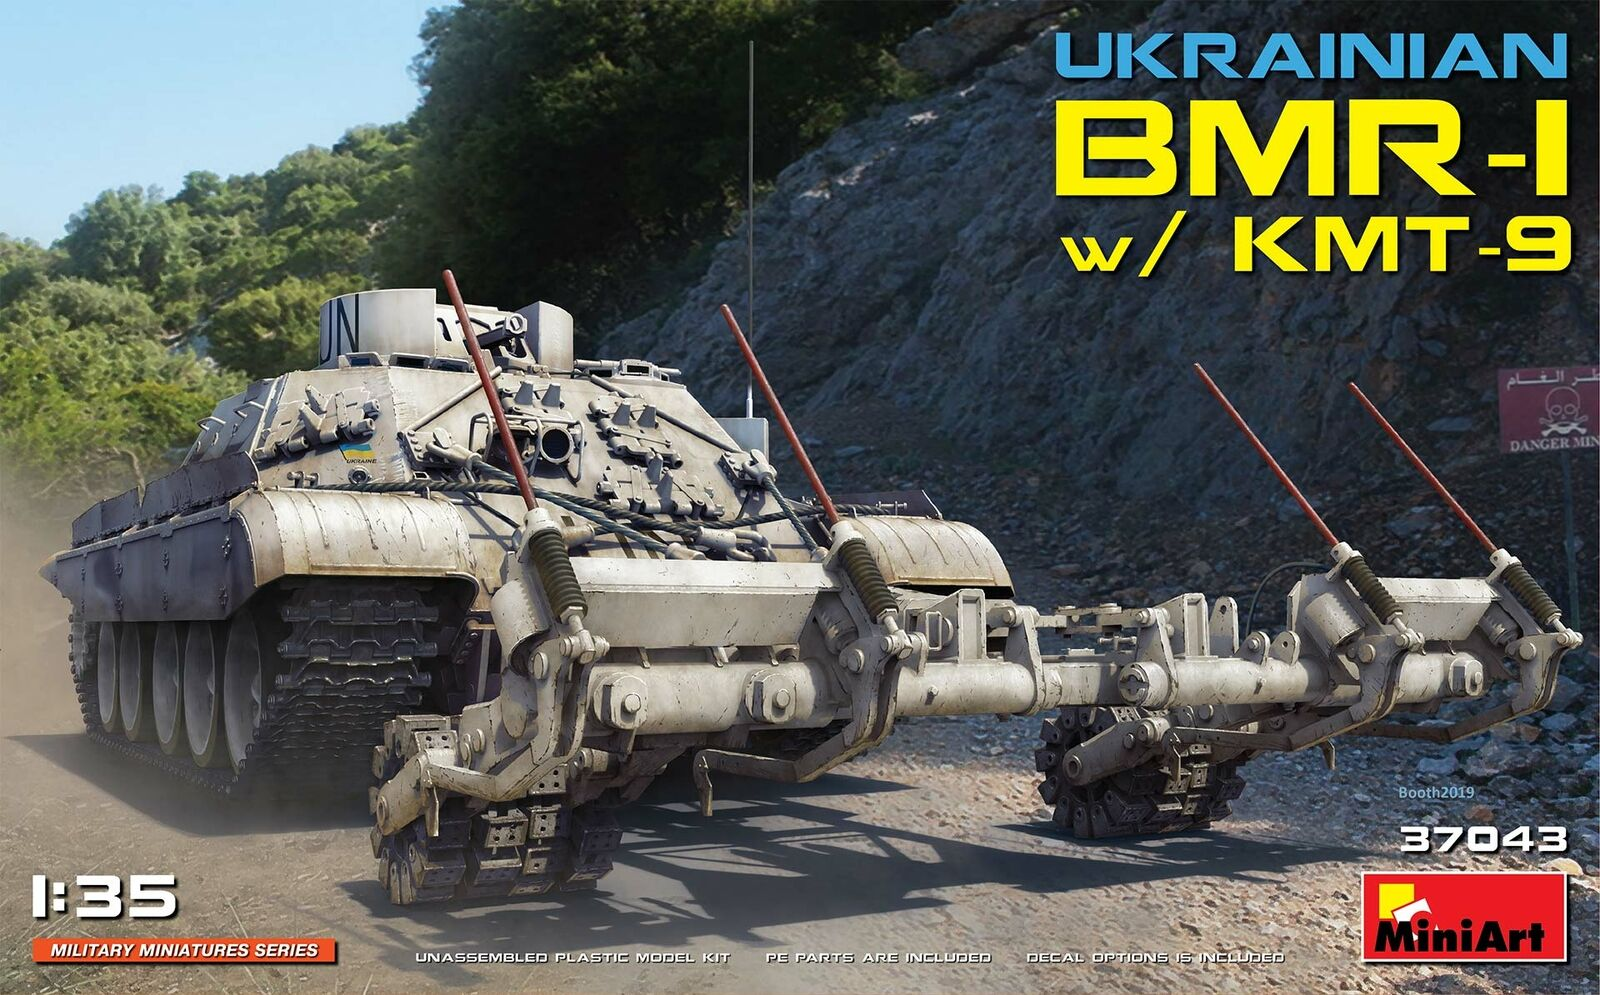 Miniart 1/35 Ucraino Bmr-1 With Kmt-9 #37043